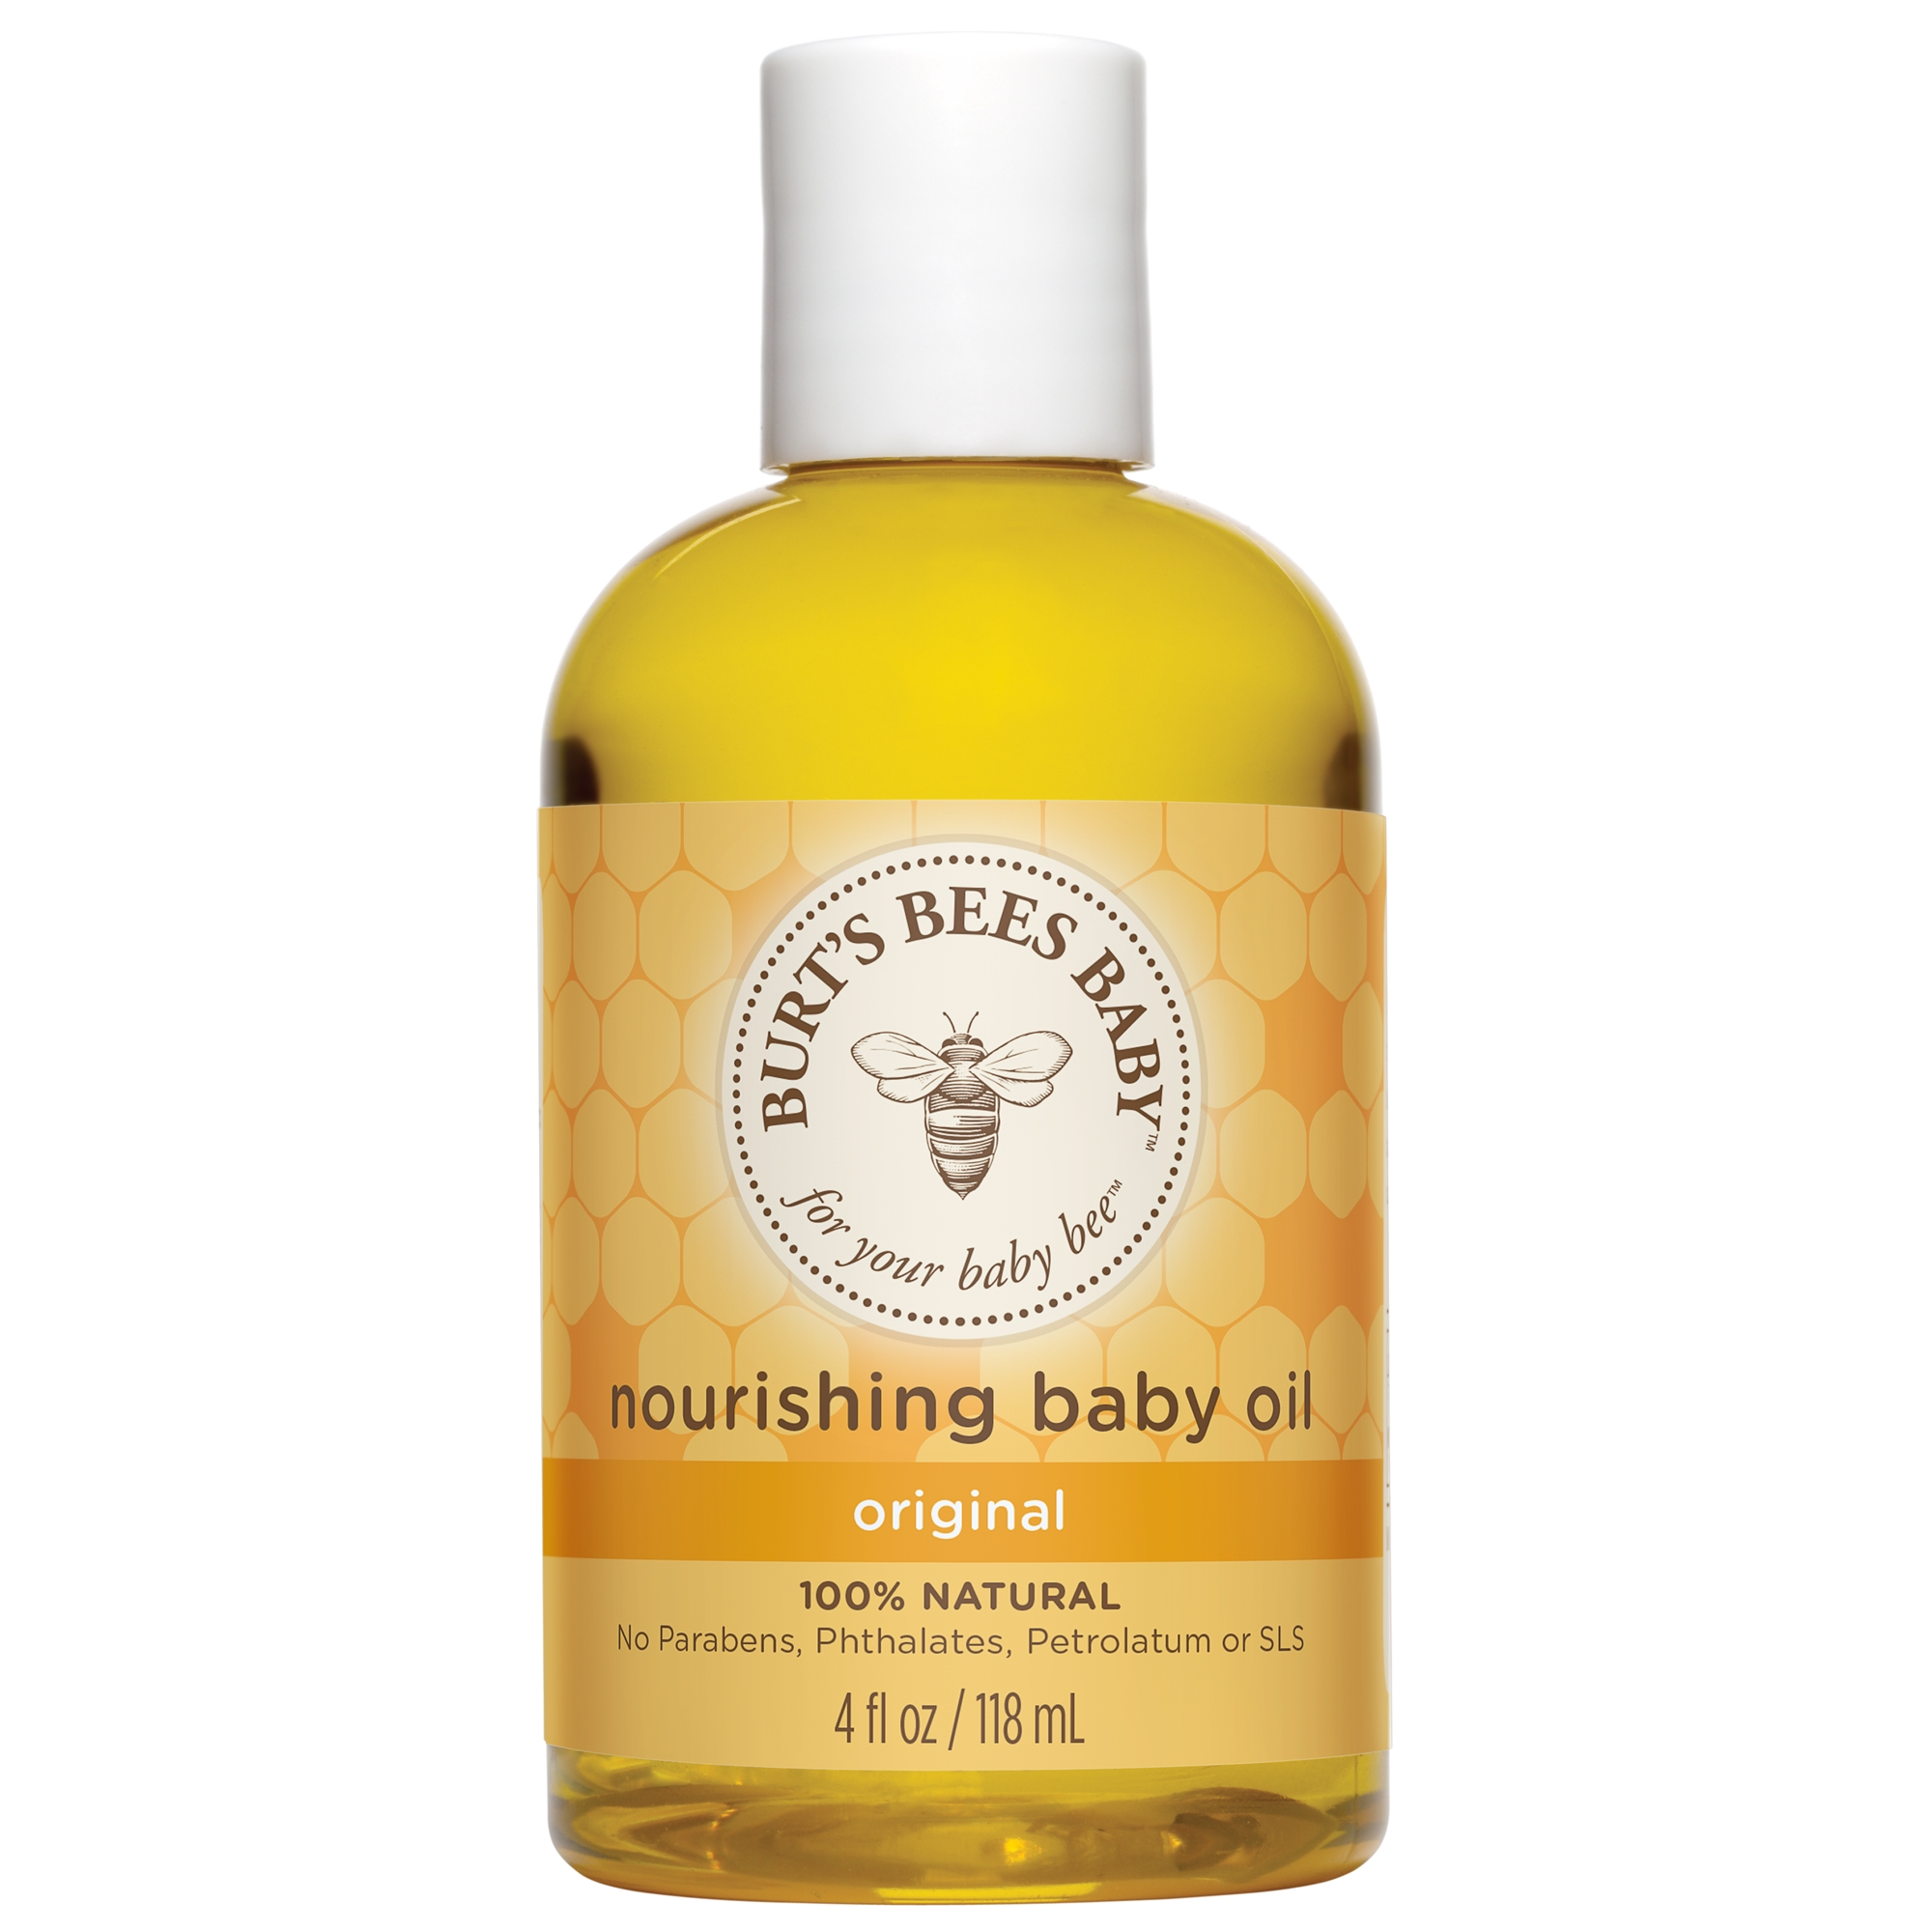 Burt's Bees Baby Nourishing Baby Oil, 100% Natural Baby Skin Care - 4 oz Bottle